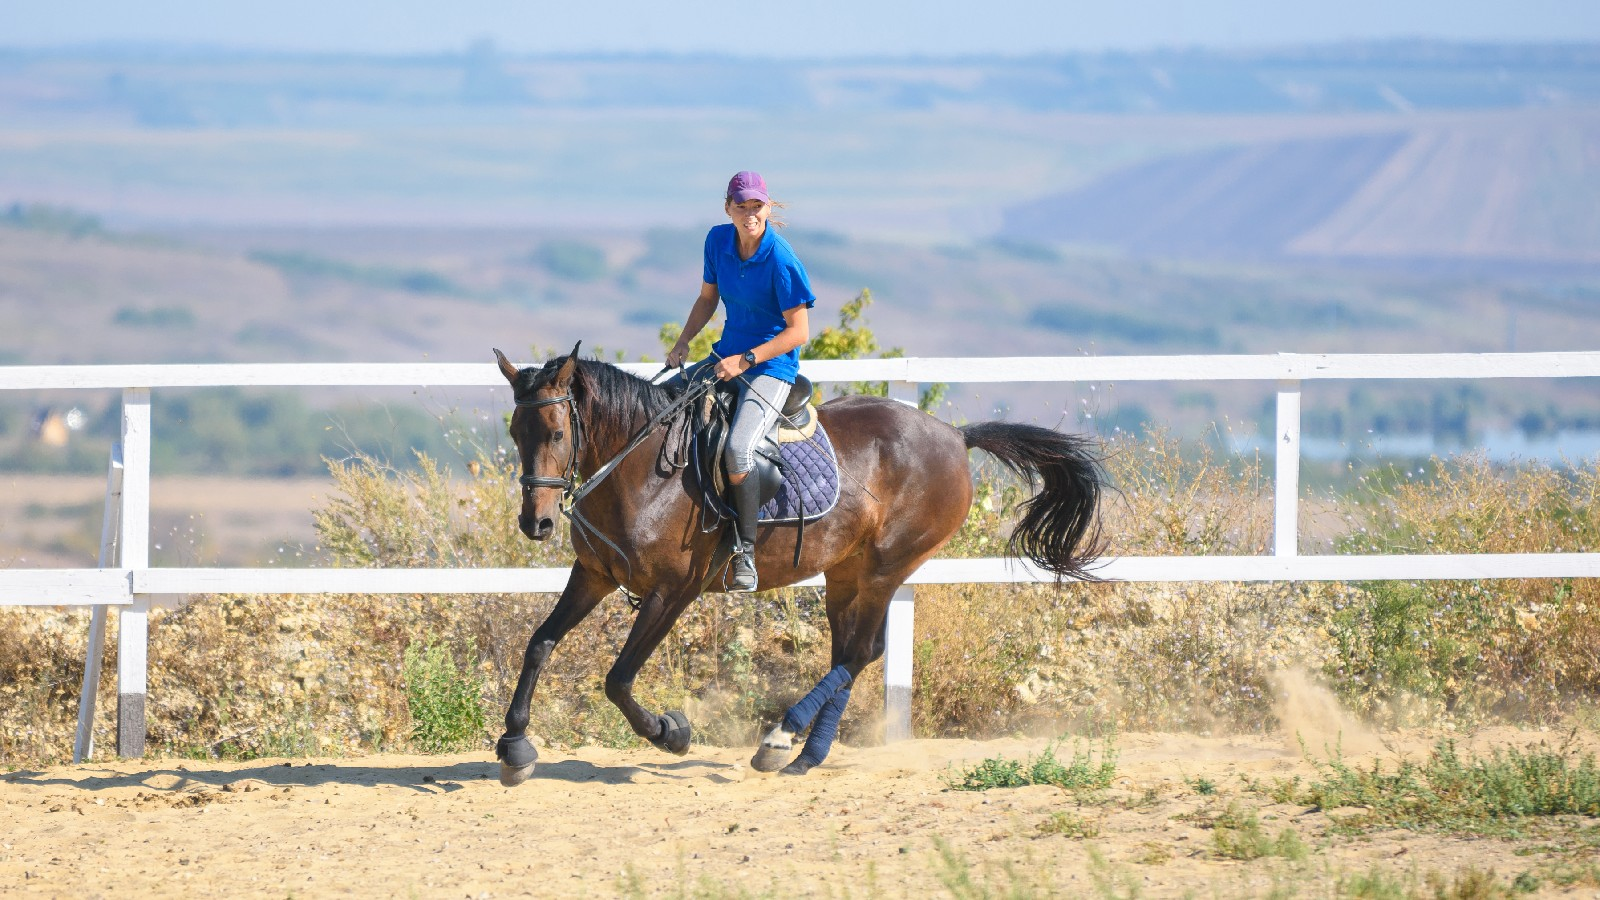 Anatomy and Common Injuries of the Equine Forelimb : Enhance outcomes for equine athletes with an in-depth understanding of common causes of forelimb lameness